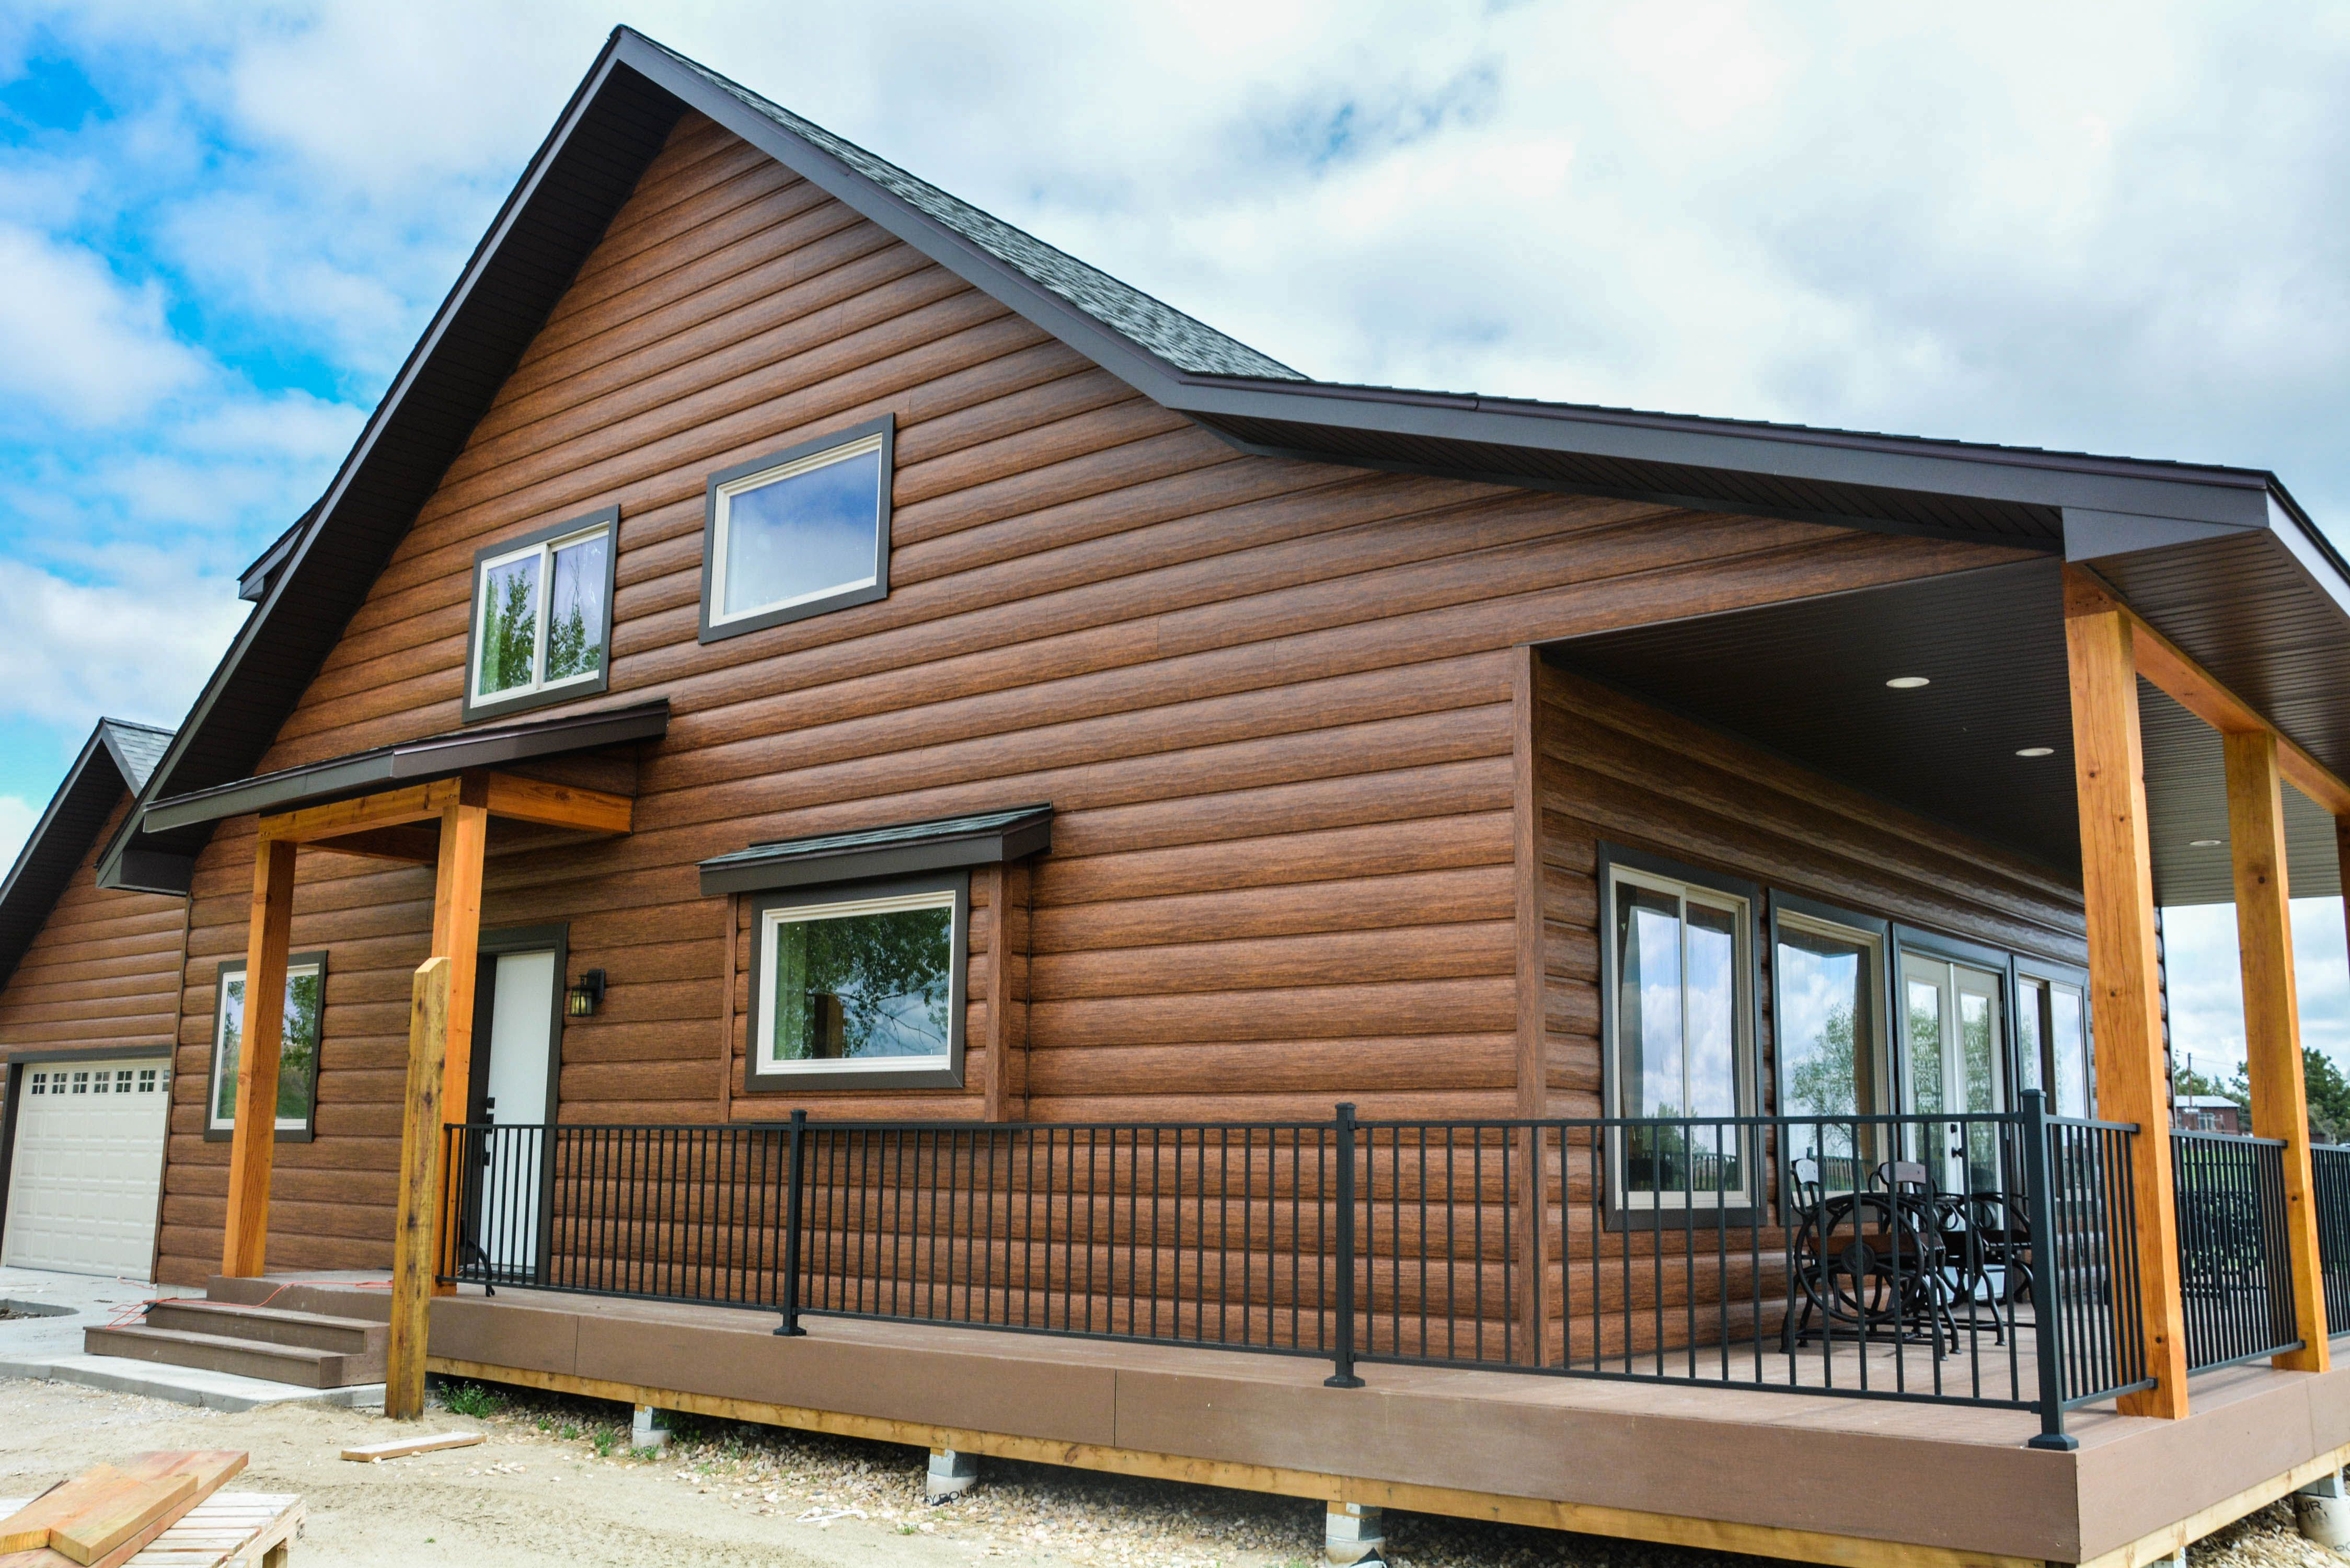 Red Cedar Log Cabin In The Country Love This Porch And Dark Brown Trim Who Wouldn T Want Log Siding On Their Log Cabin Exterior Steel Siding House Log Siding